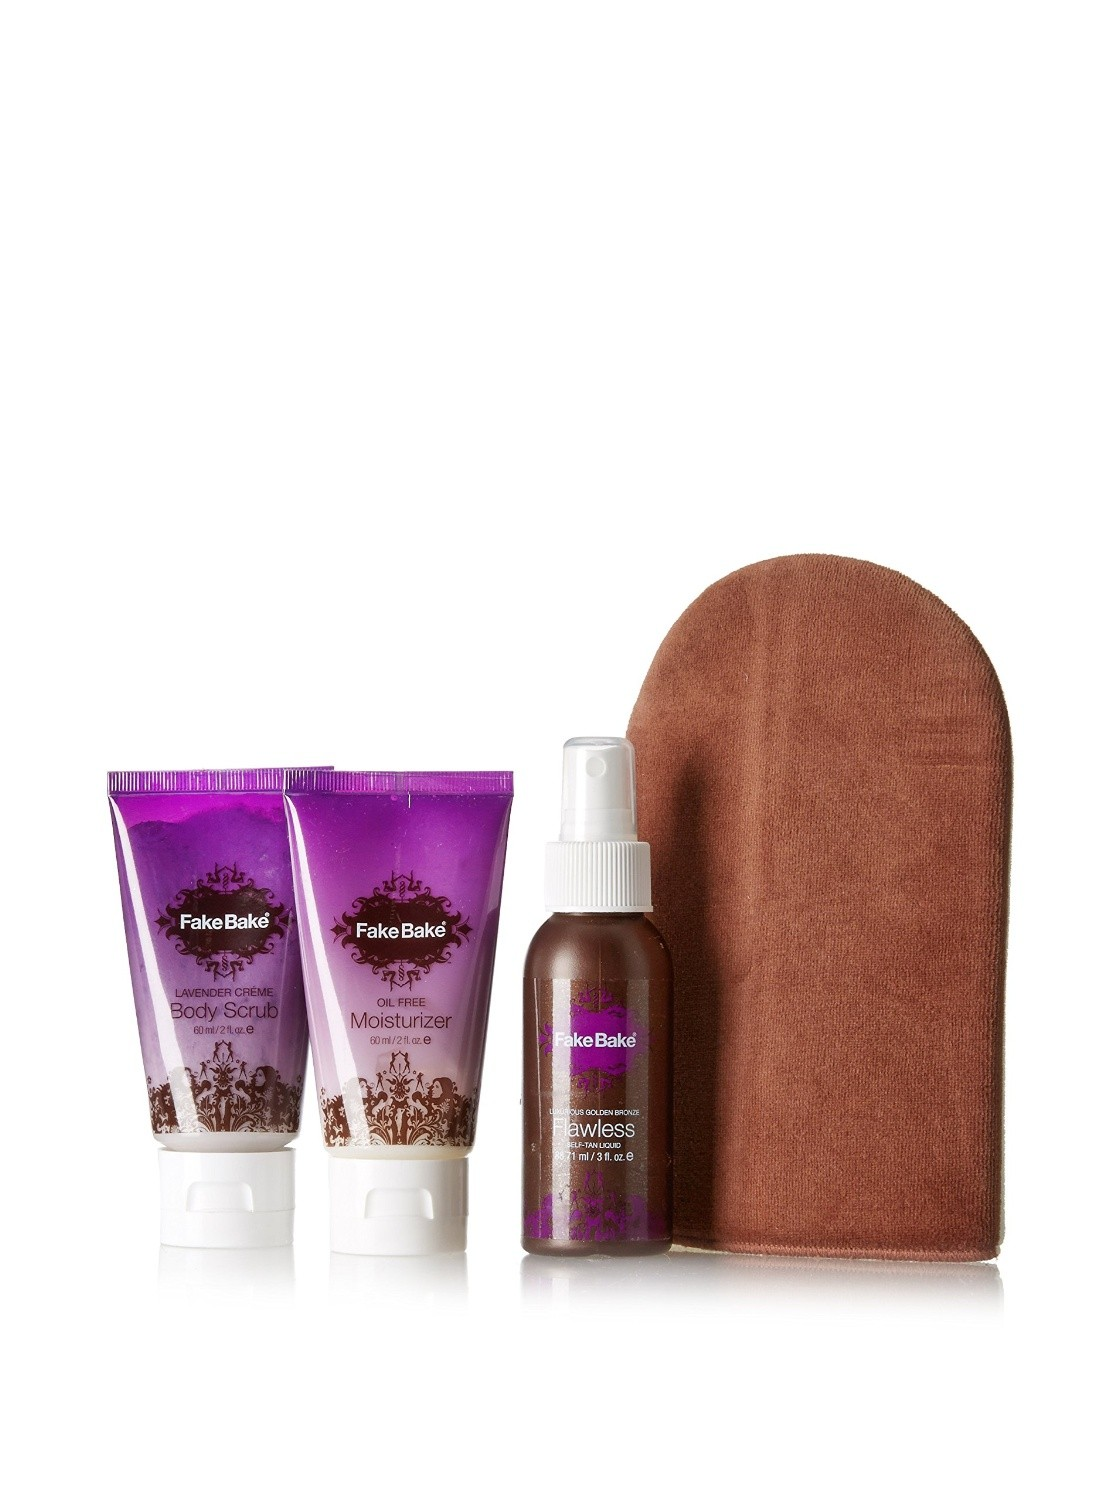 Fake Bake Flawless Travel Kit 3 Piece Set